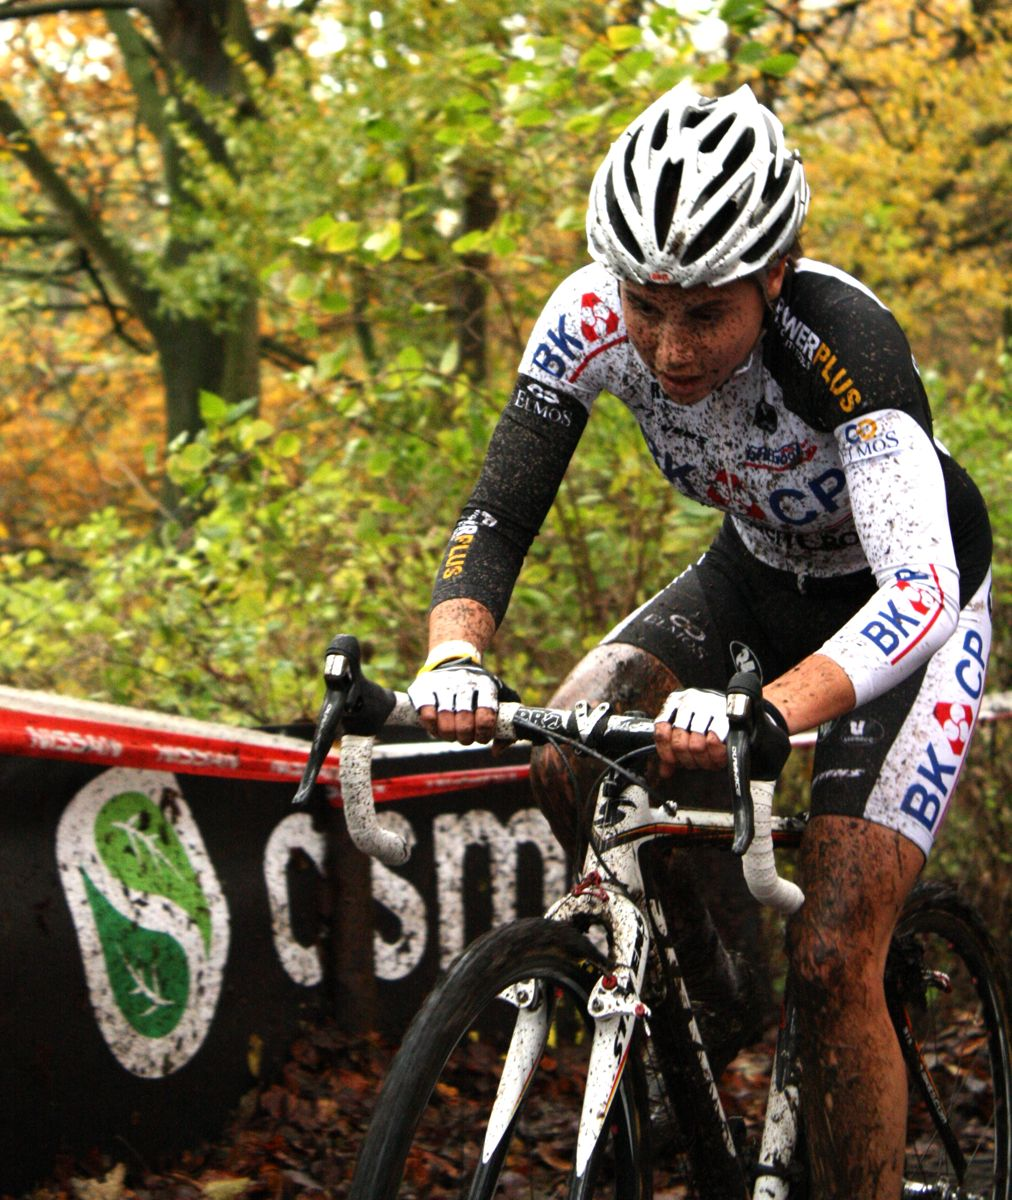 Sanne Cant continued a season of excellent results. ? Dan Seaton